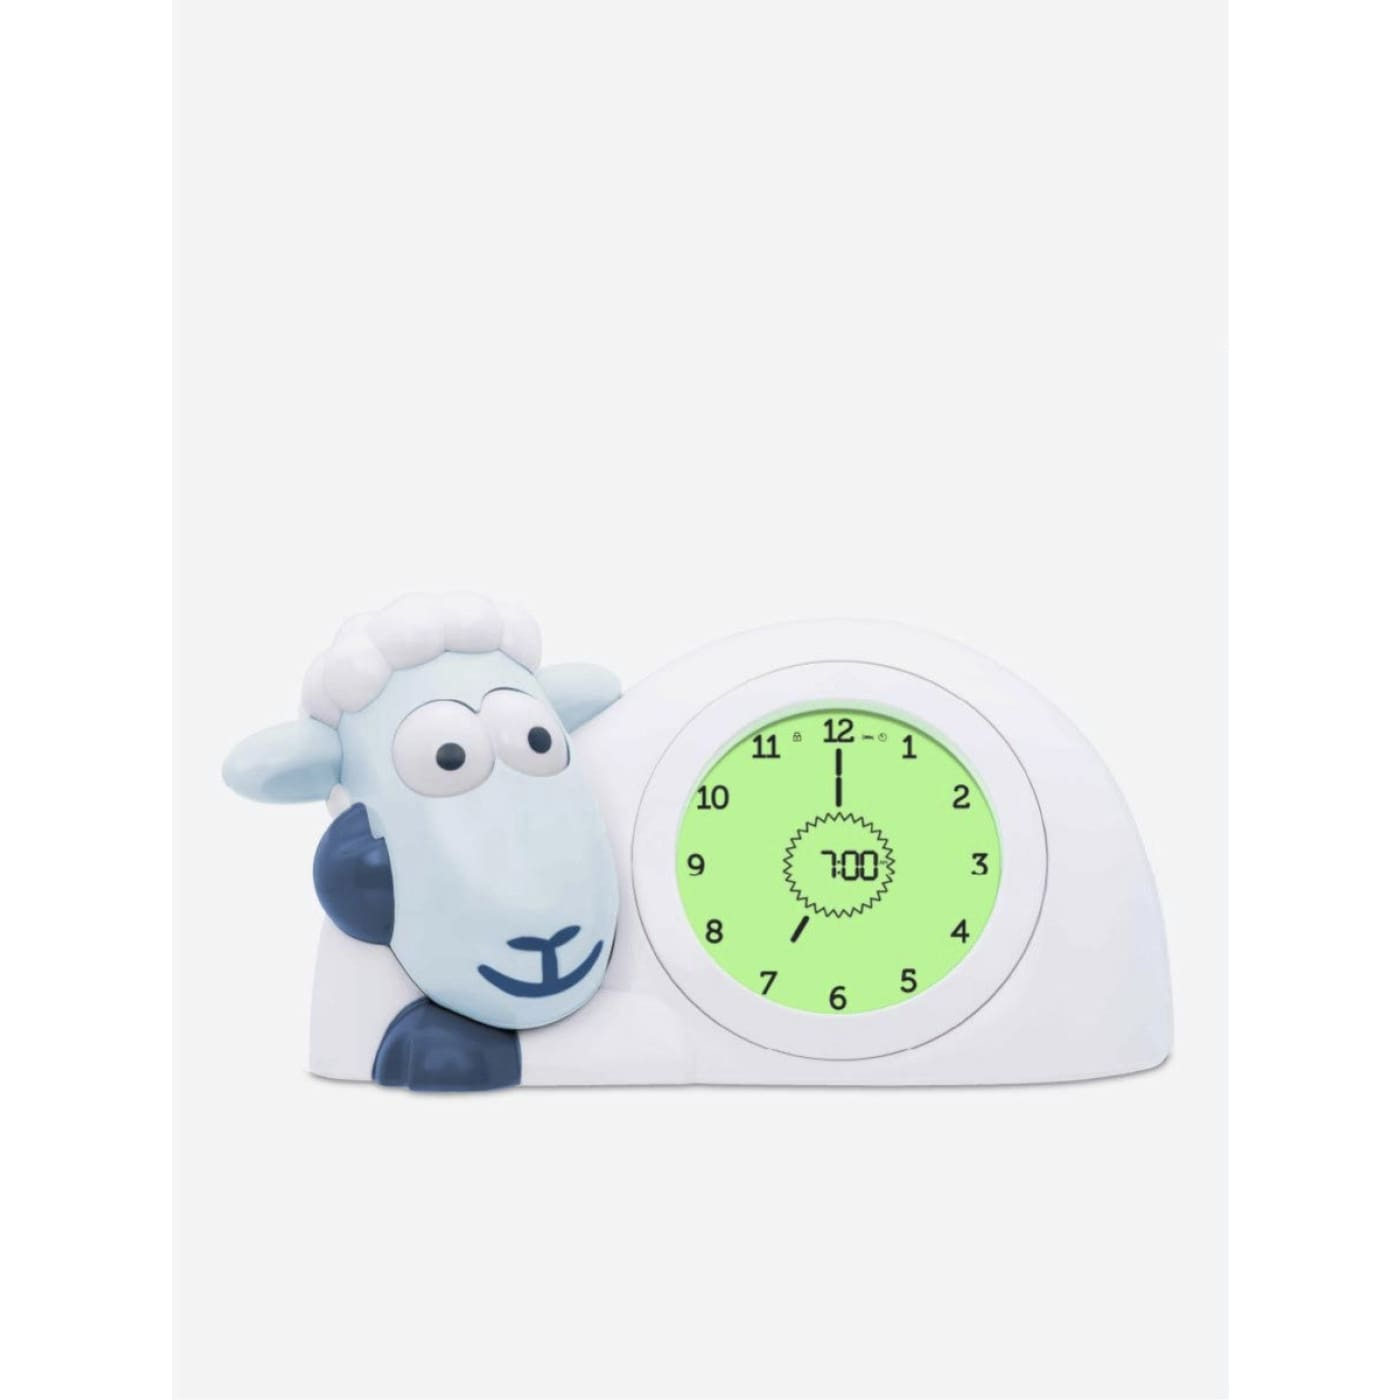 ZAZU Sleeptrainer SAM - Blue - Blue - NURSERY & BEDTIME - SLEEP AIDS/NIGHT LIGHTS